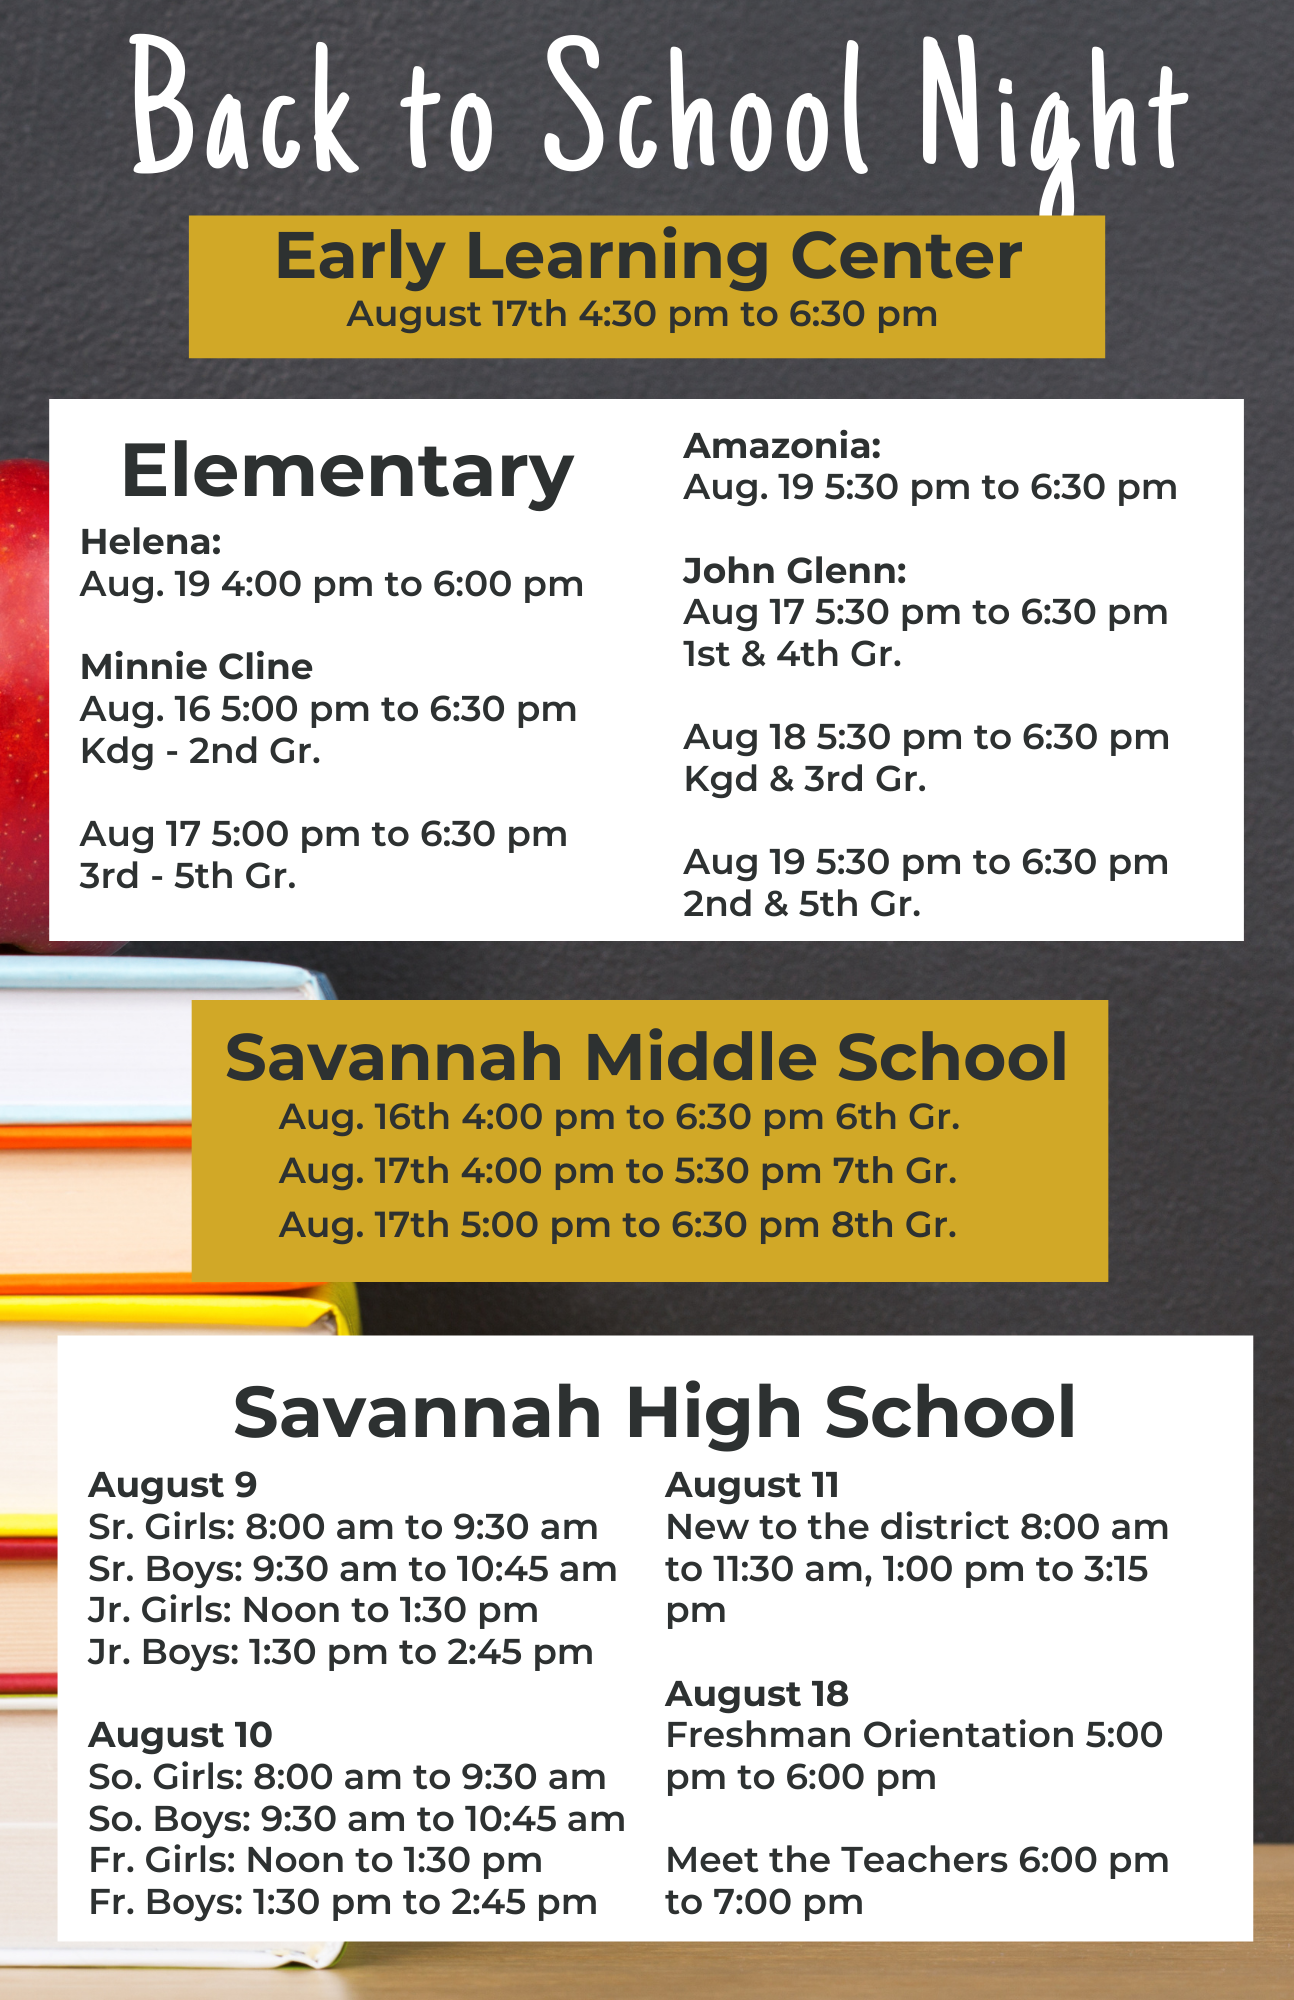 Back to school night open house flyer